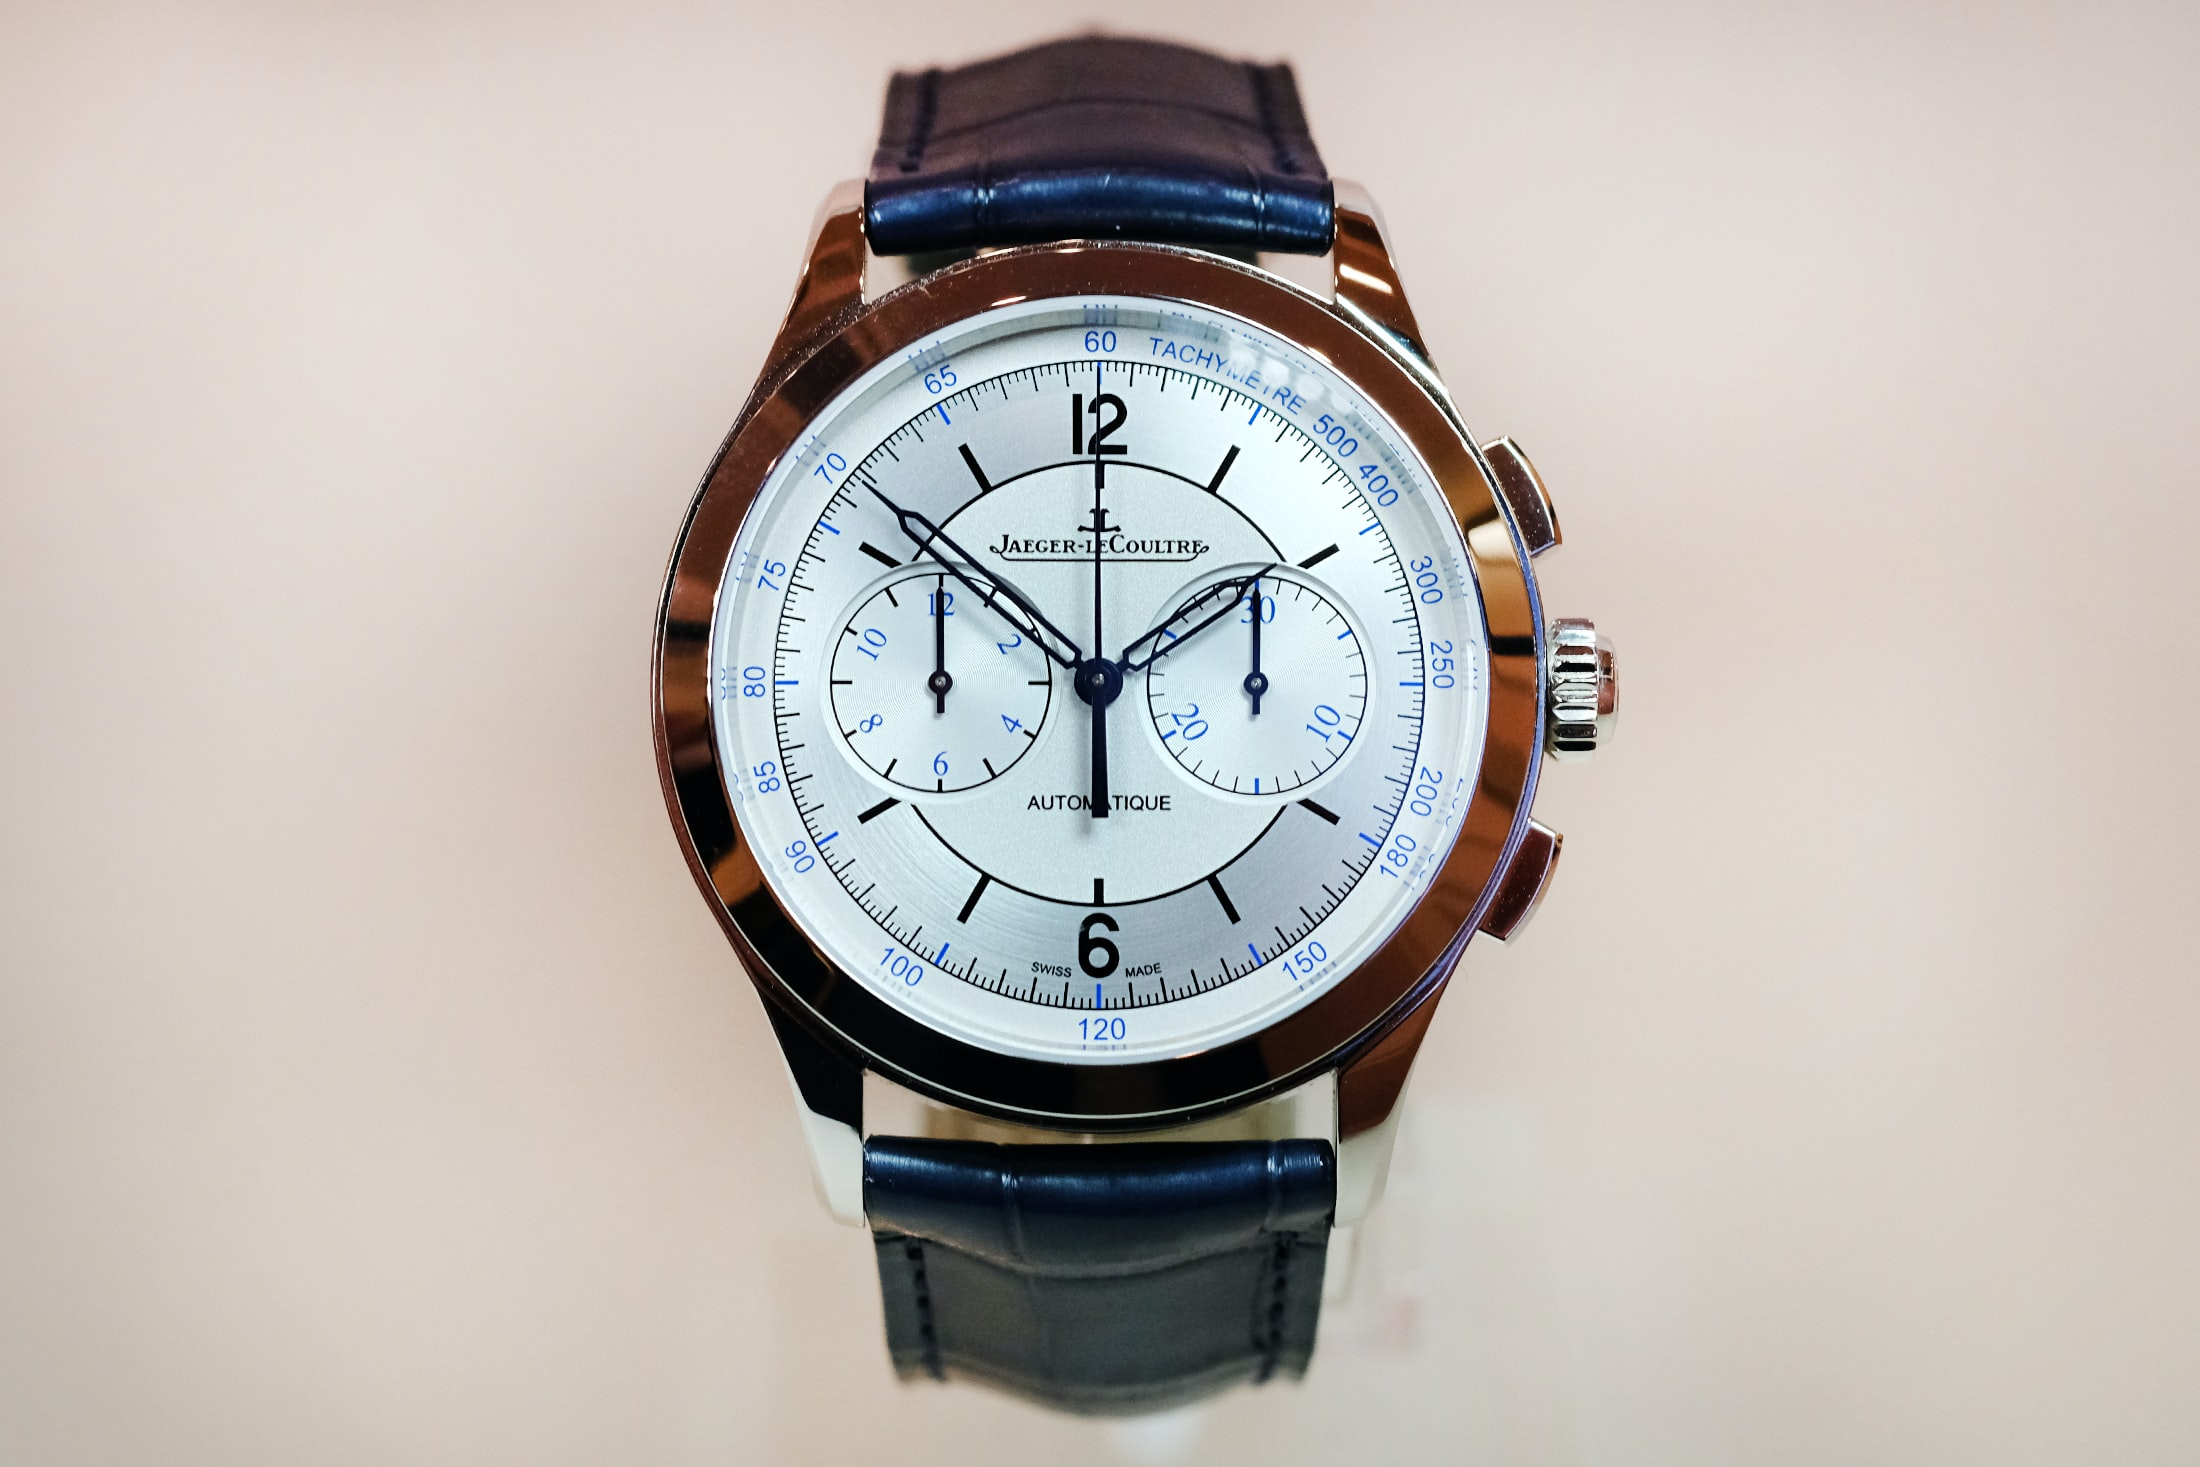 Introducing: The Jaeger-LeCoultre Master Control Collection With Sector Dials (Live Pics + Pricing) Introducing: The Jaeger-LeCoultre Master Control Collection With Sector Dials (Live Pics + Pricing) sector 05